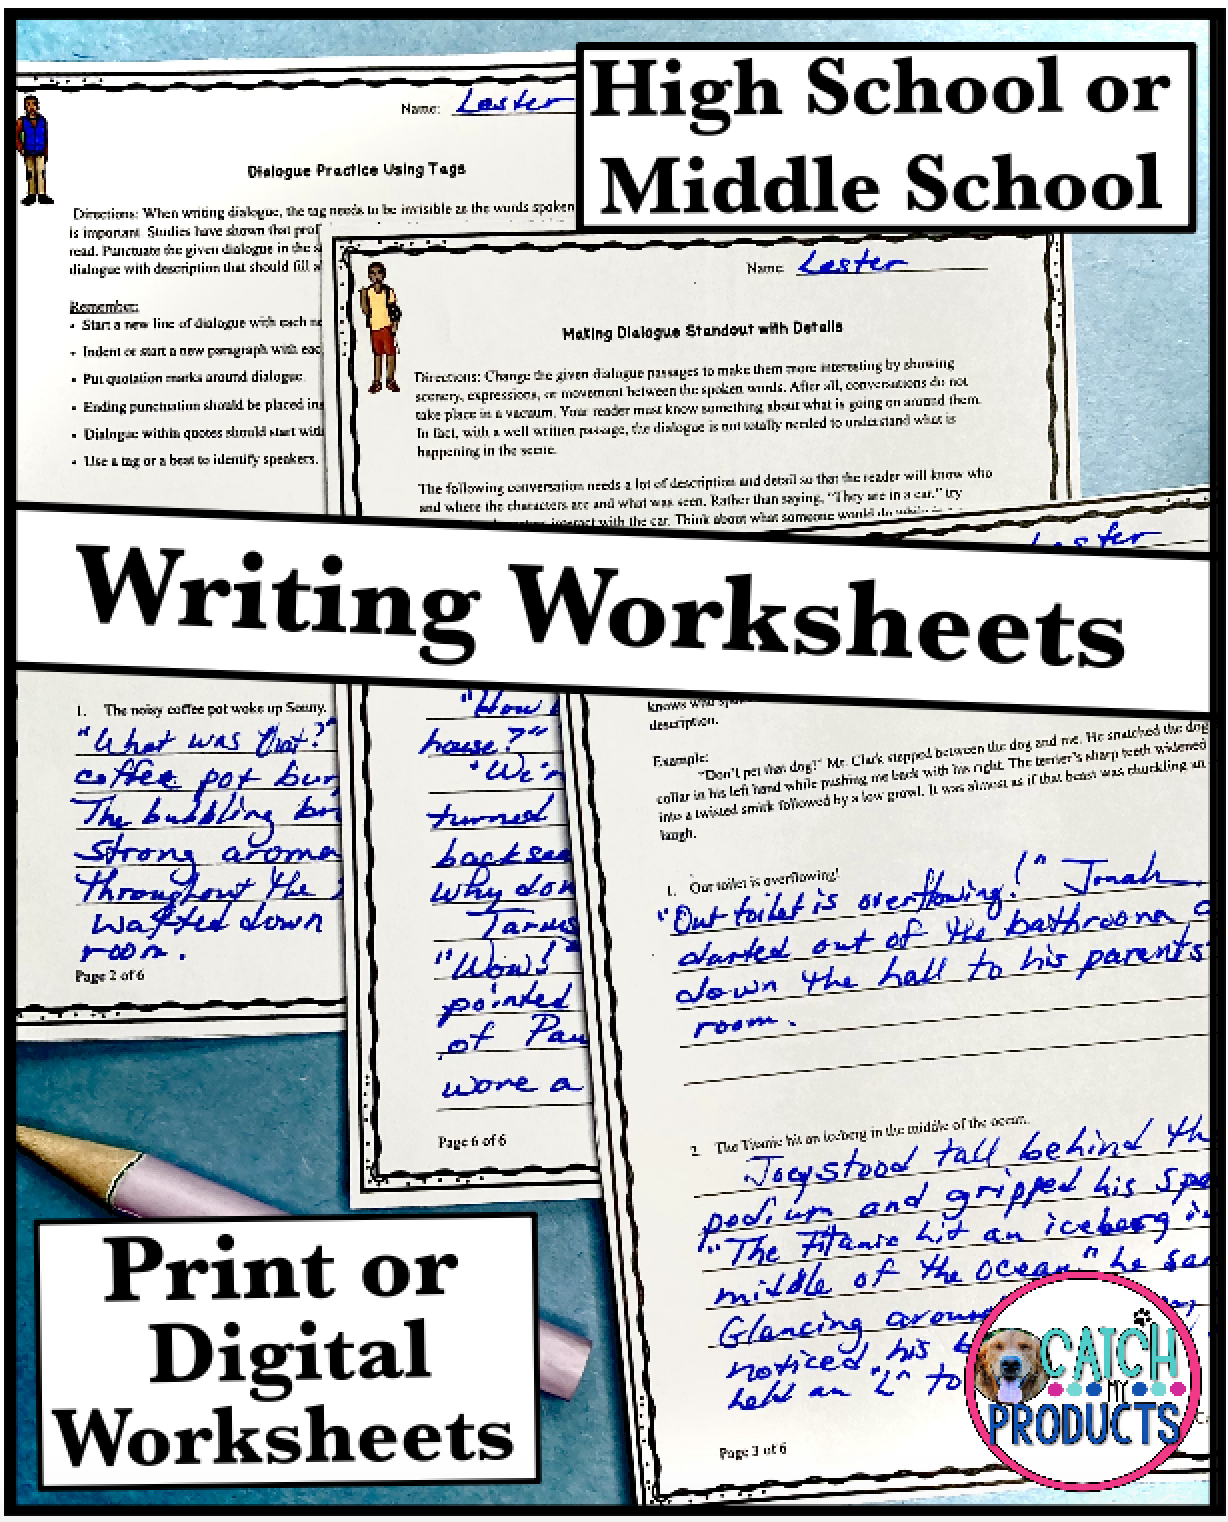 Digital Work On Writing Dialogue Tips For High School Or Middle School Students Teaching Writing Digital Writing High School [ 1522 x 1228 Pixel ]